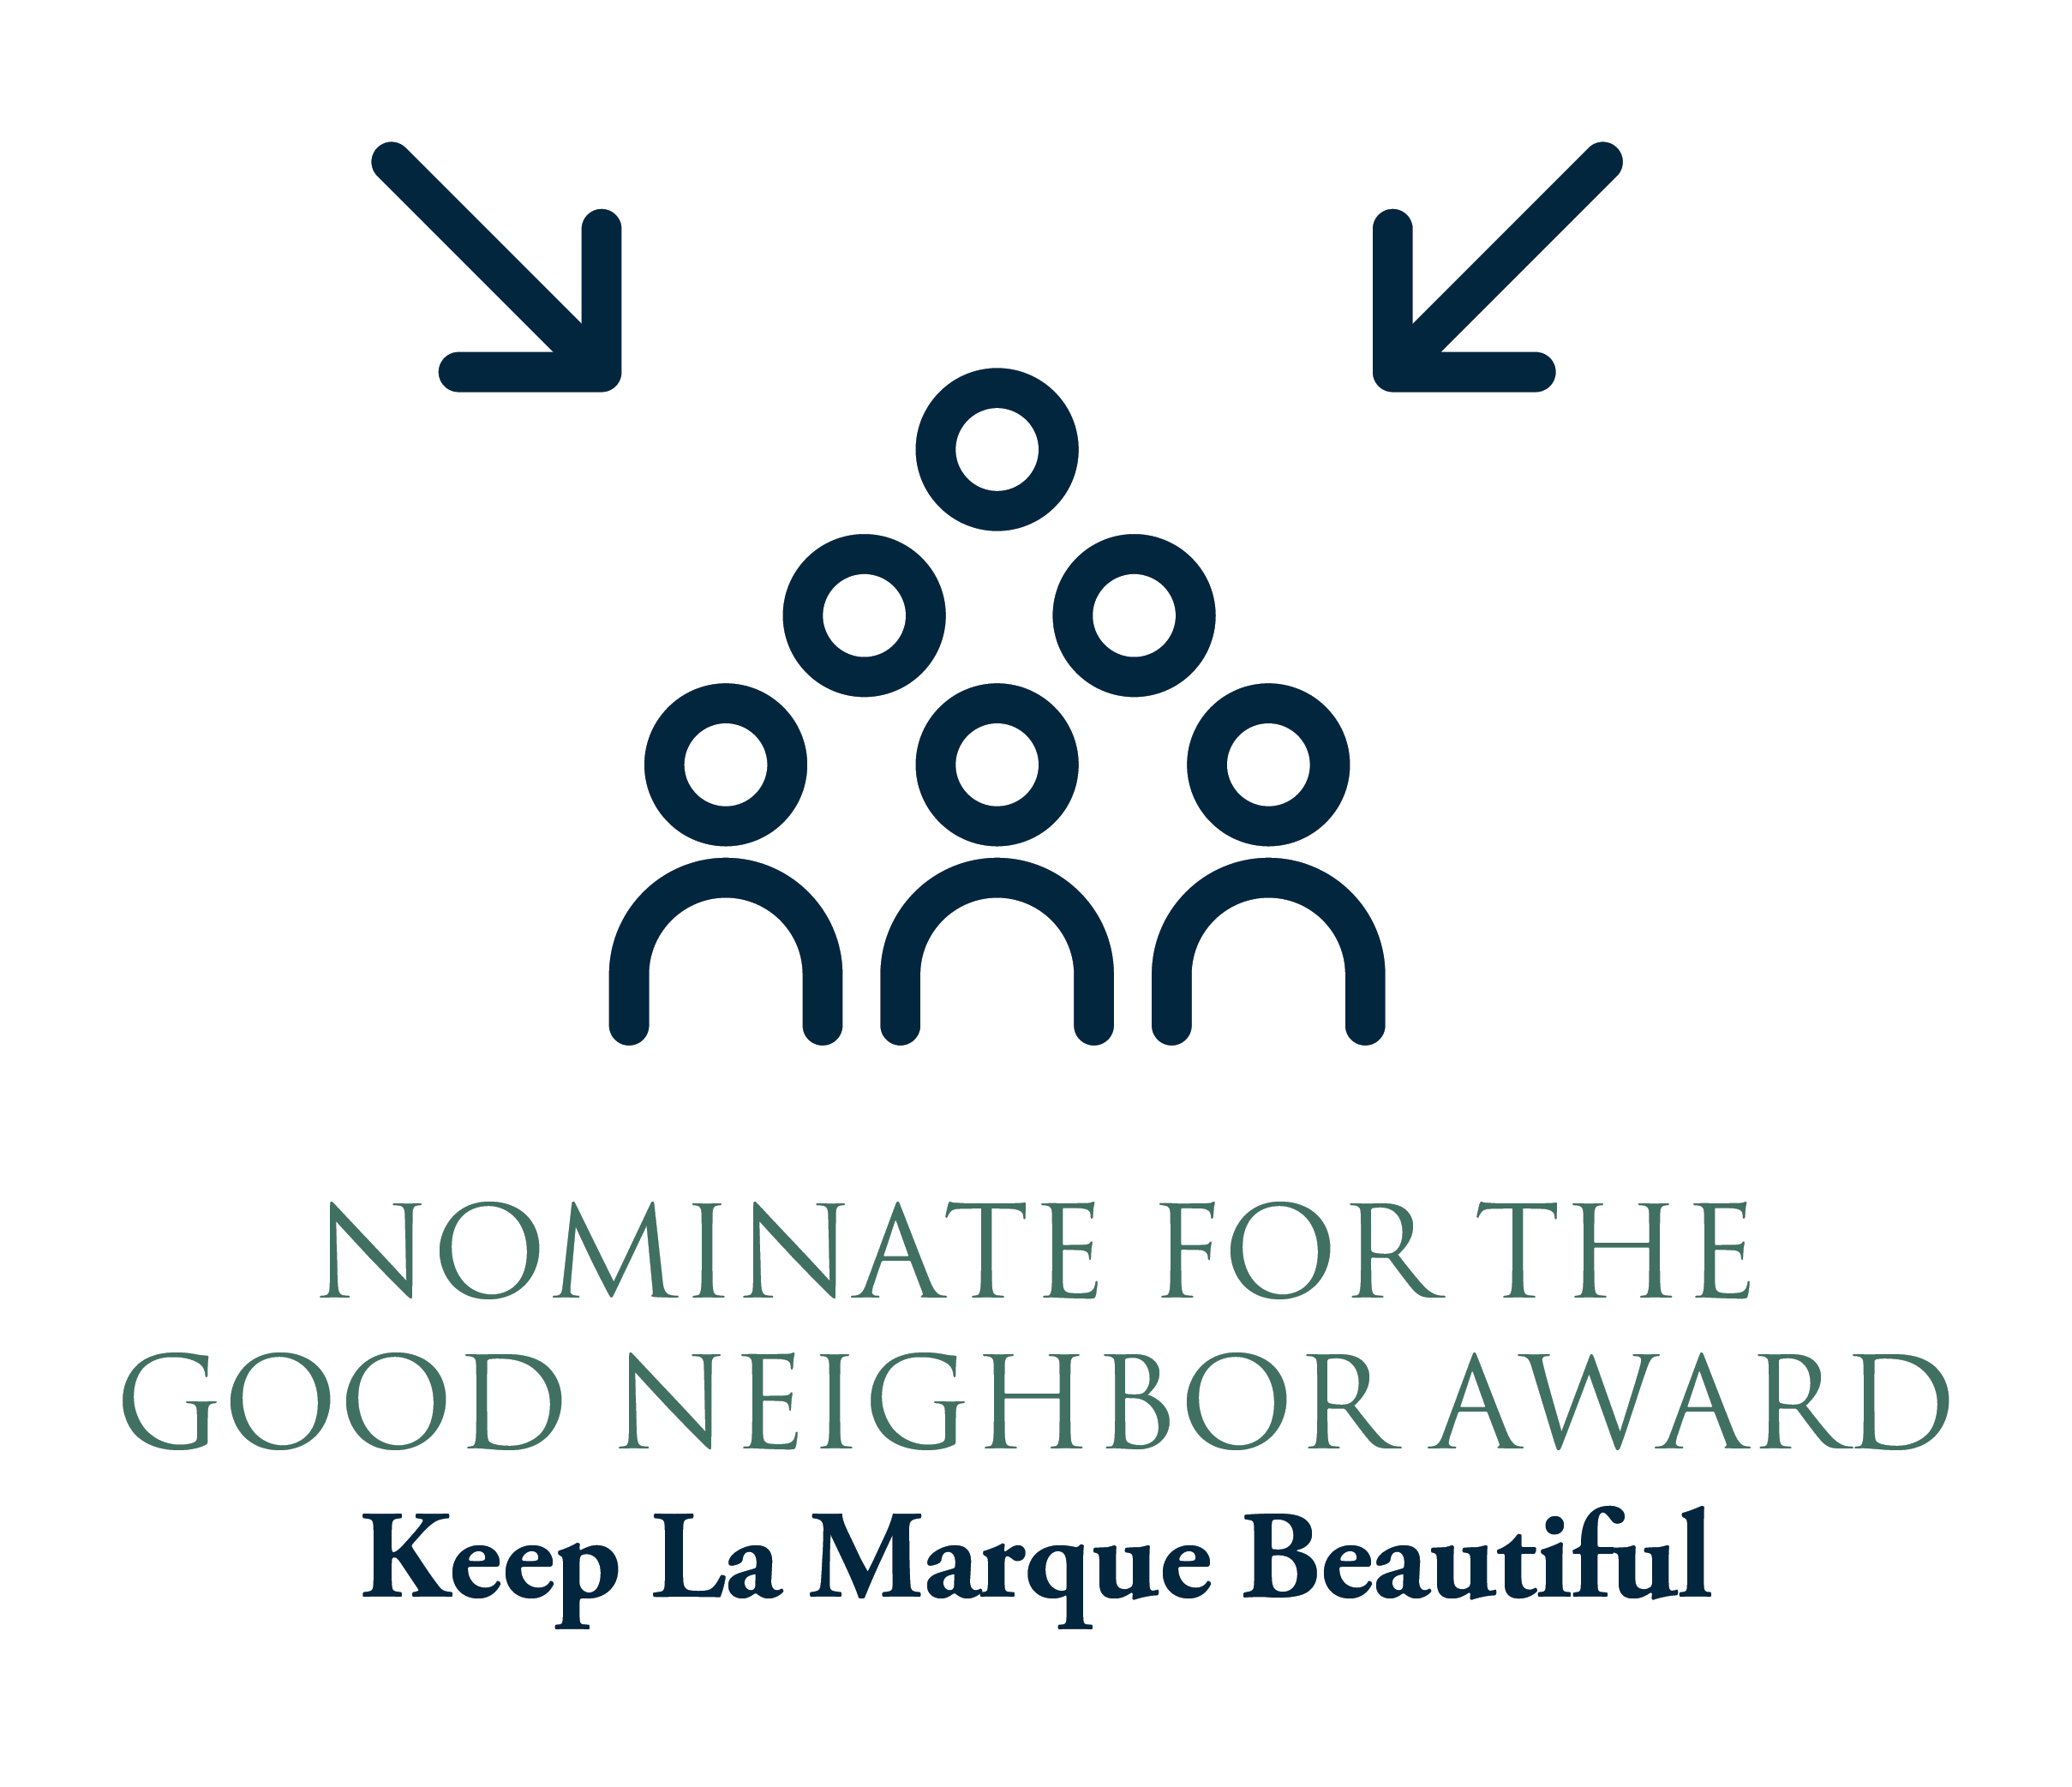 Nominate for Good Neighbor Award graphic with arrows pointing to people line drawing